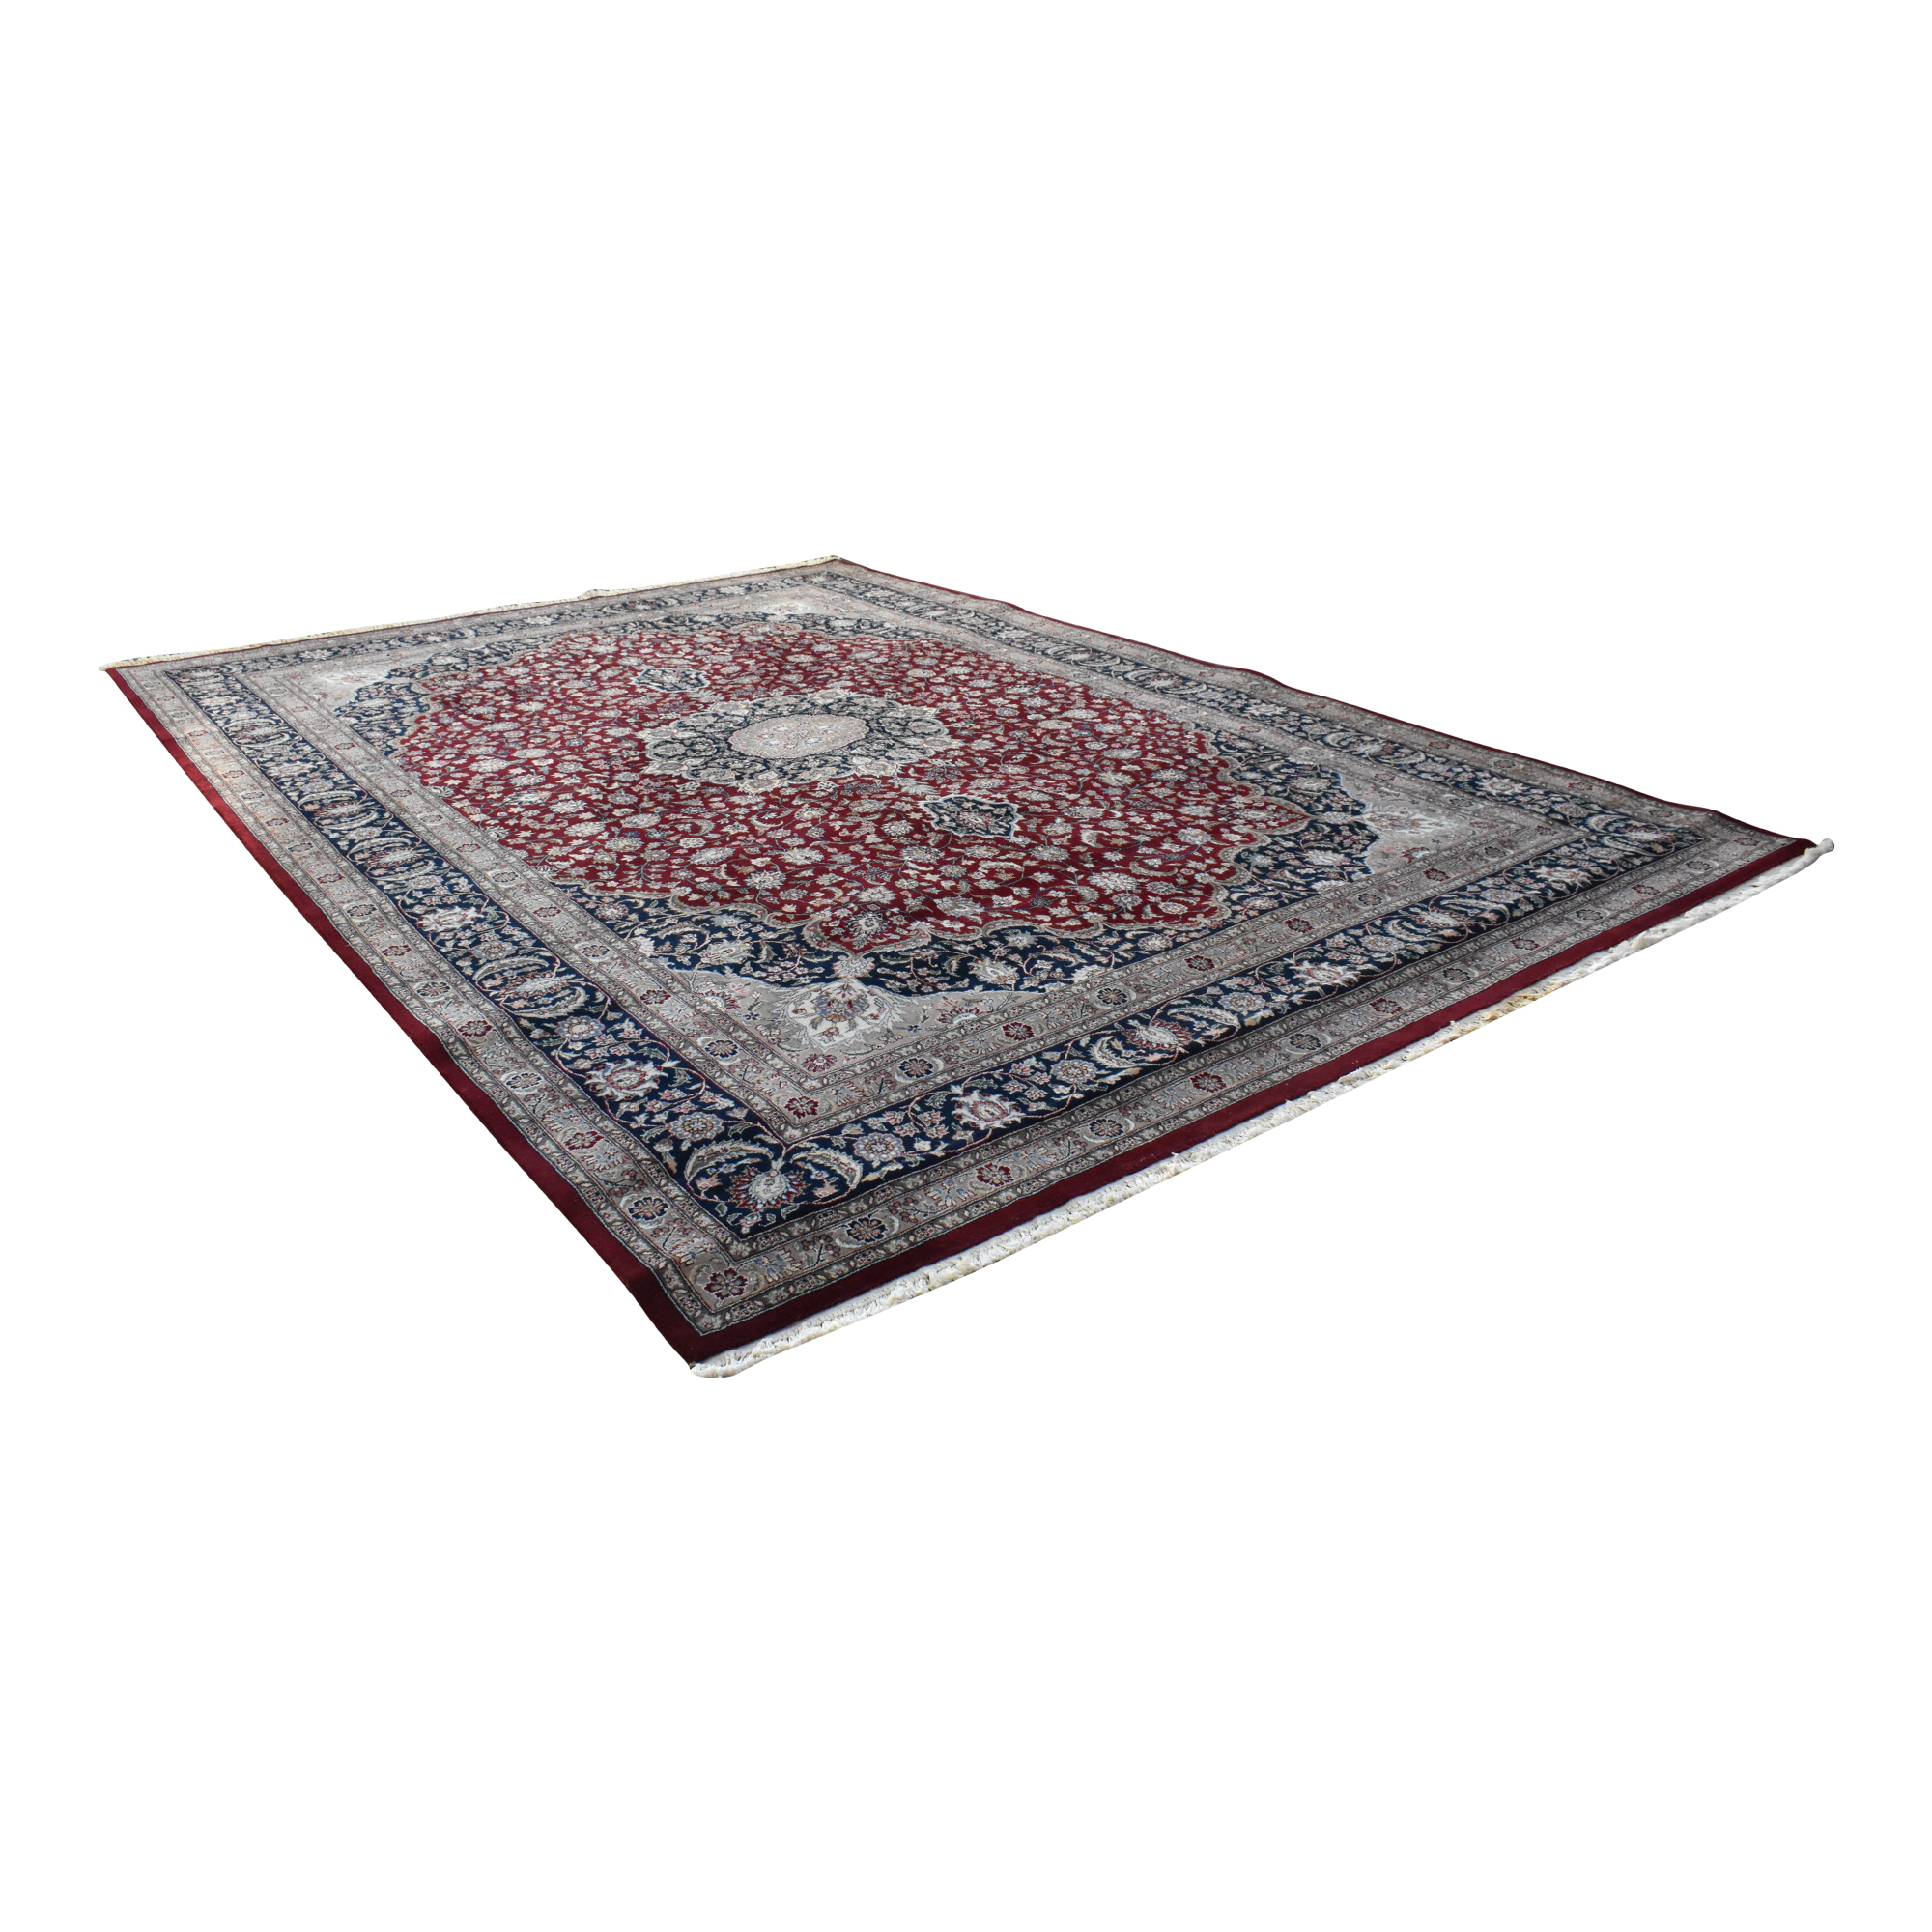 Kashan Style Persian Area Rug / Rugs